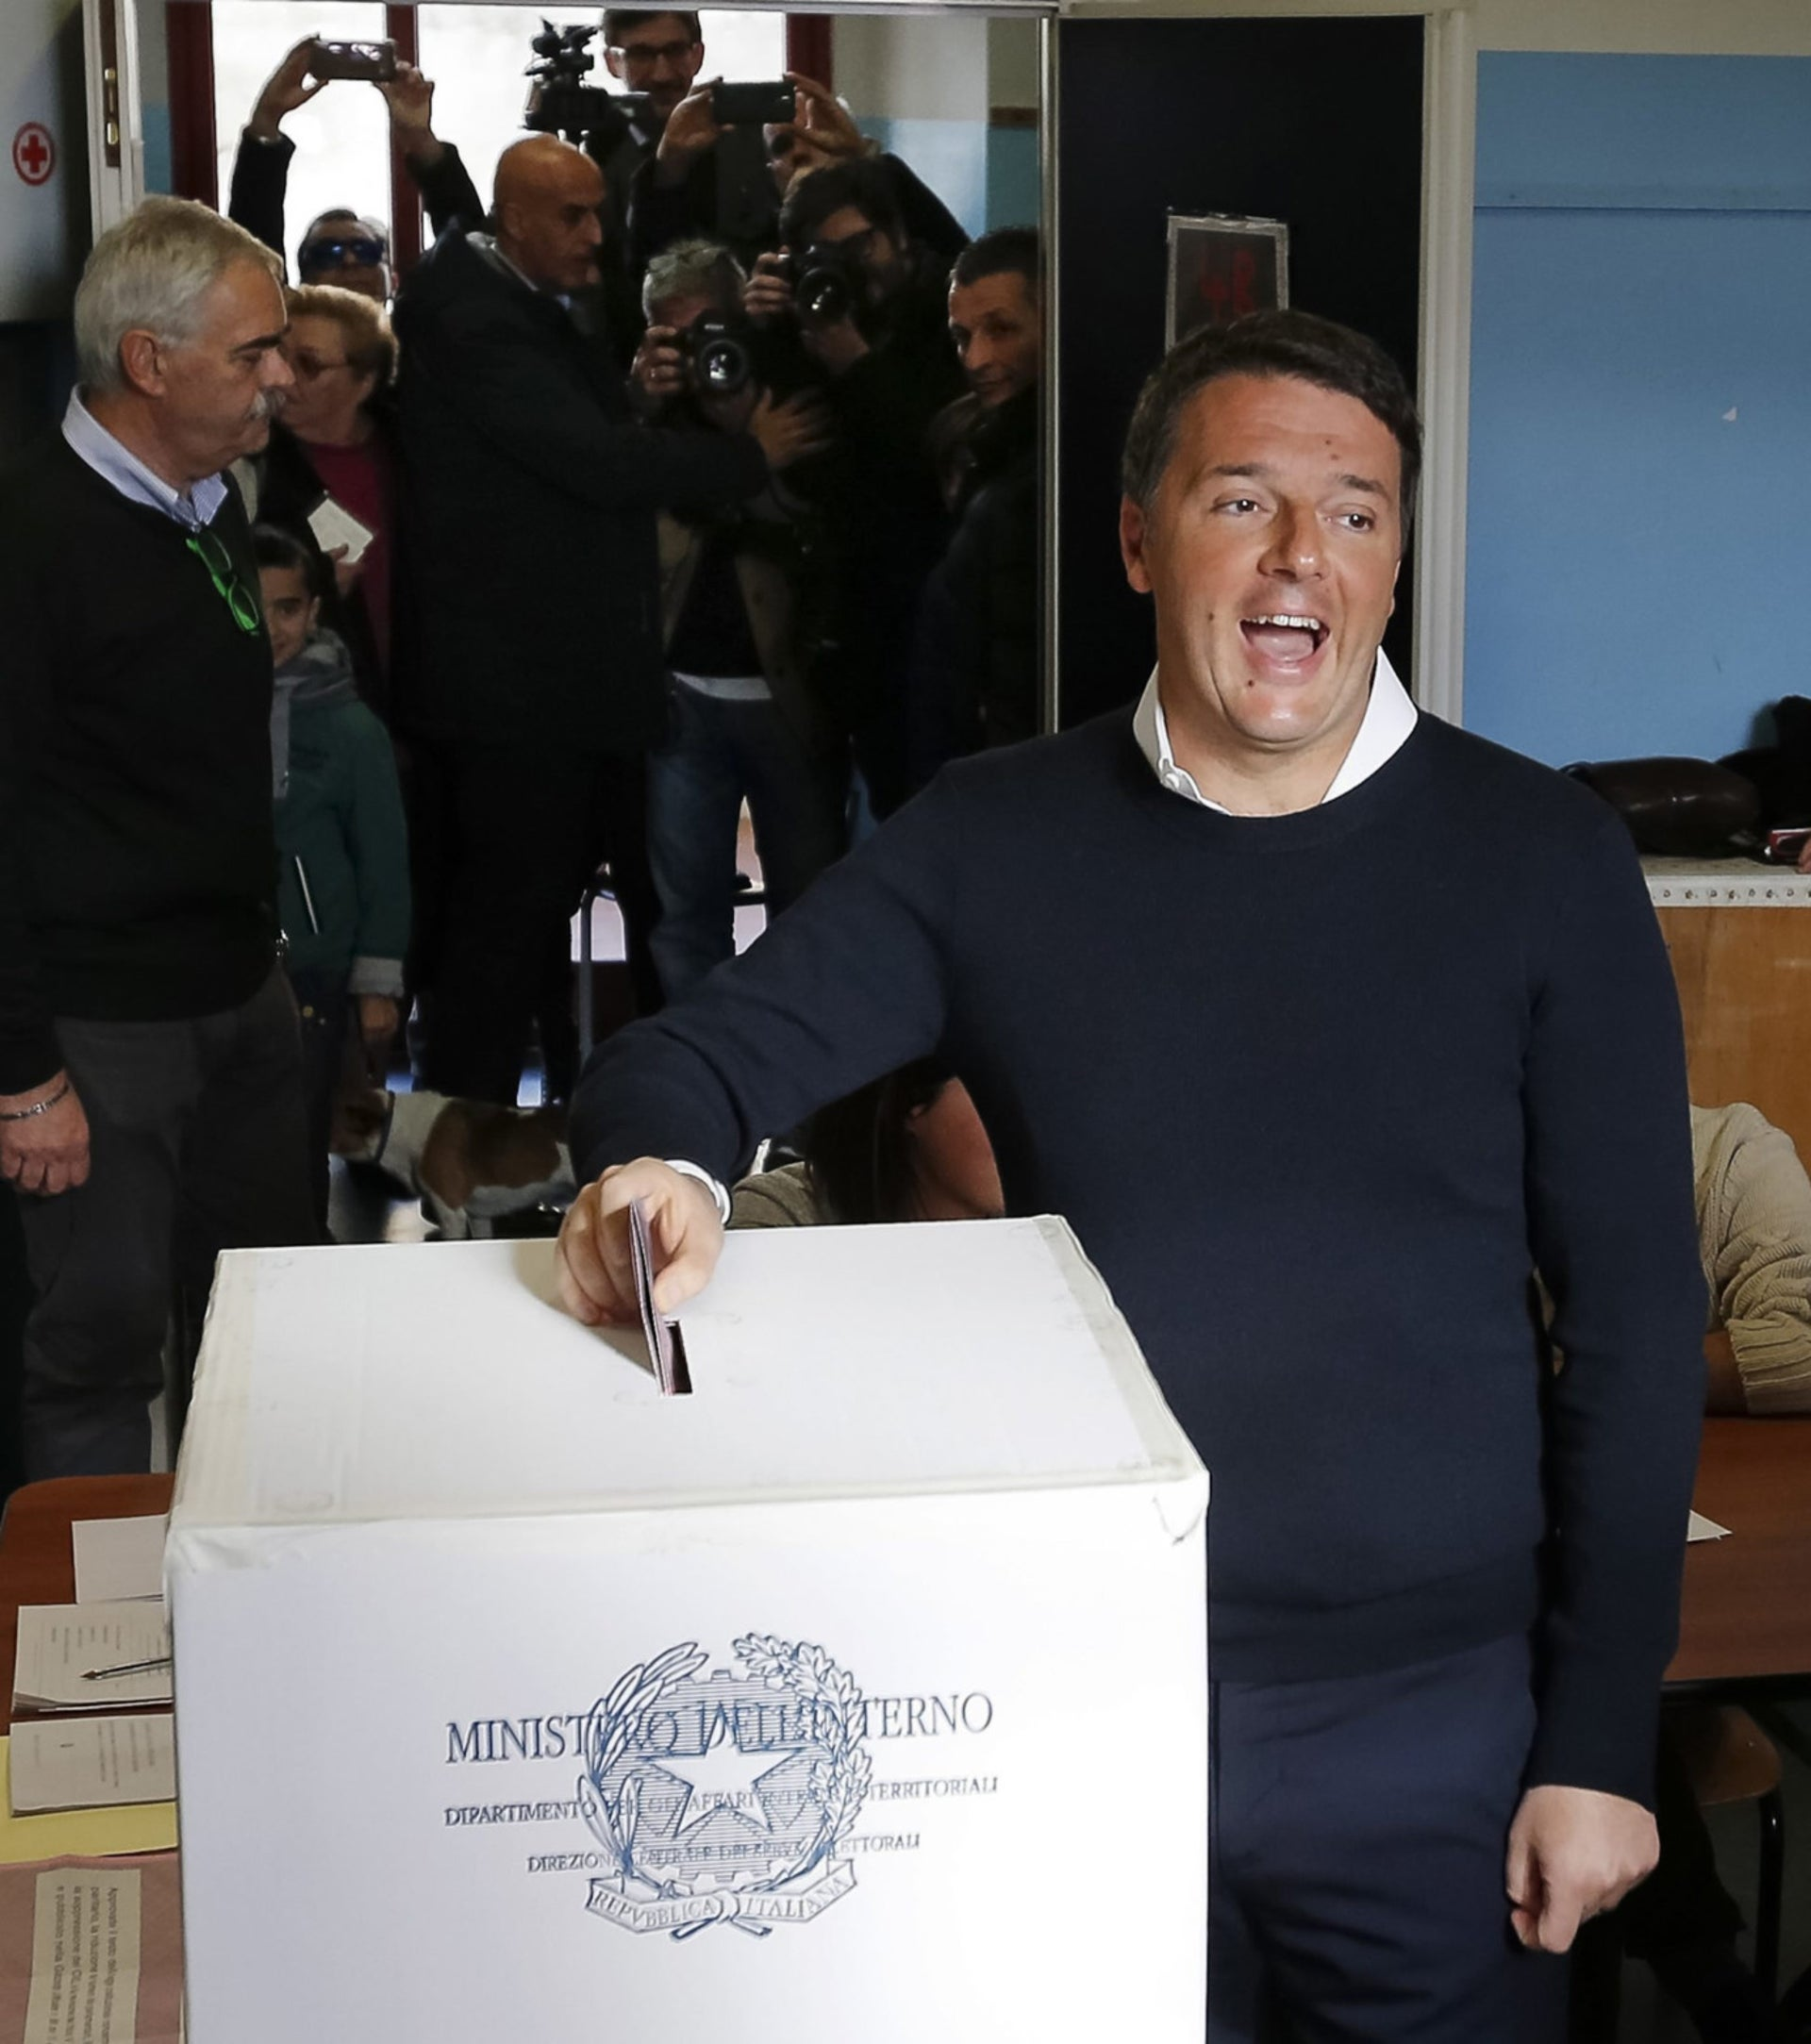 Italian Premier Matteo Renzi is flanked by his wife Agnese as he casts his ballot at a polling station in Pontassieve, Italy, Sunday, Dec. 4, 2016. Italians are voting in a referendum on constitutional reforms that is being closely watched abroad to see if Italy is the next country to reject the political status quo. Premier Matteo Renzi has said he would resign if the reforms are rejected in Sunday's vote, and opposition politicians have vowed to press for a new government if voters reject the proposed constitutional changes.